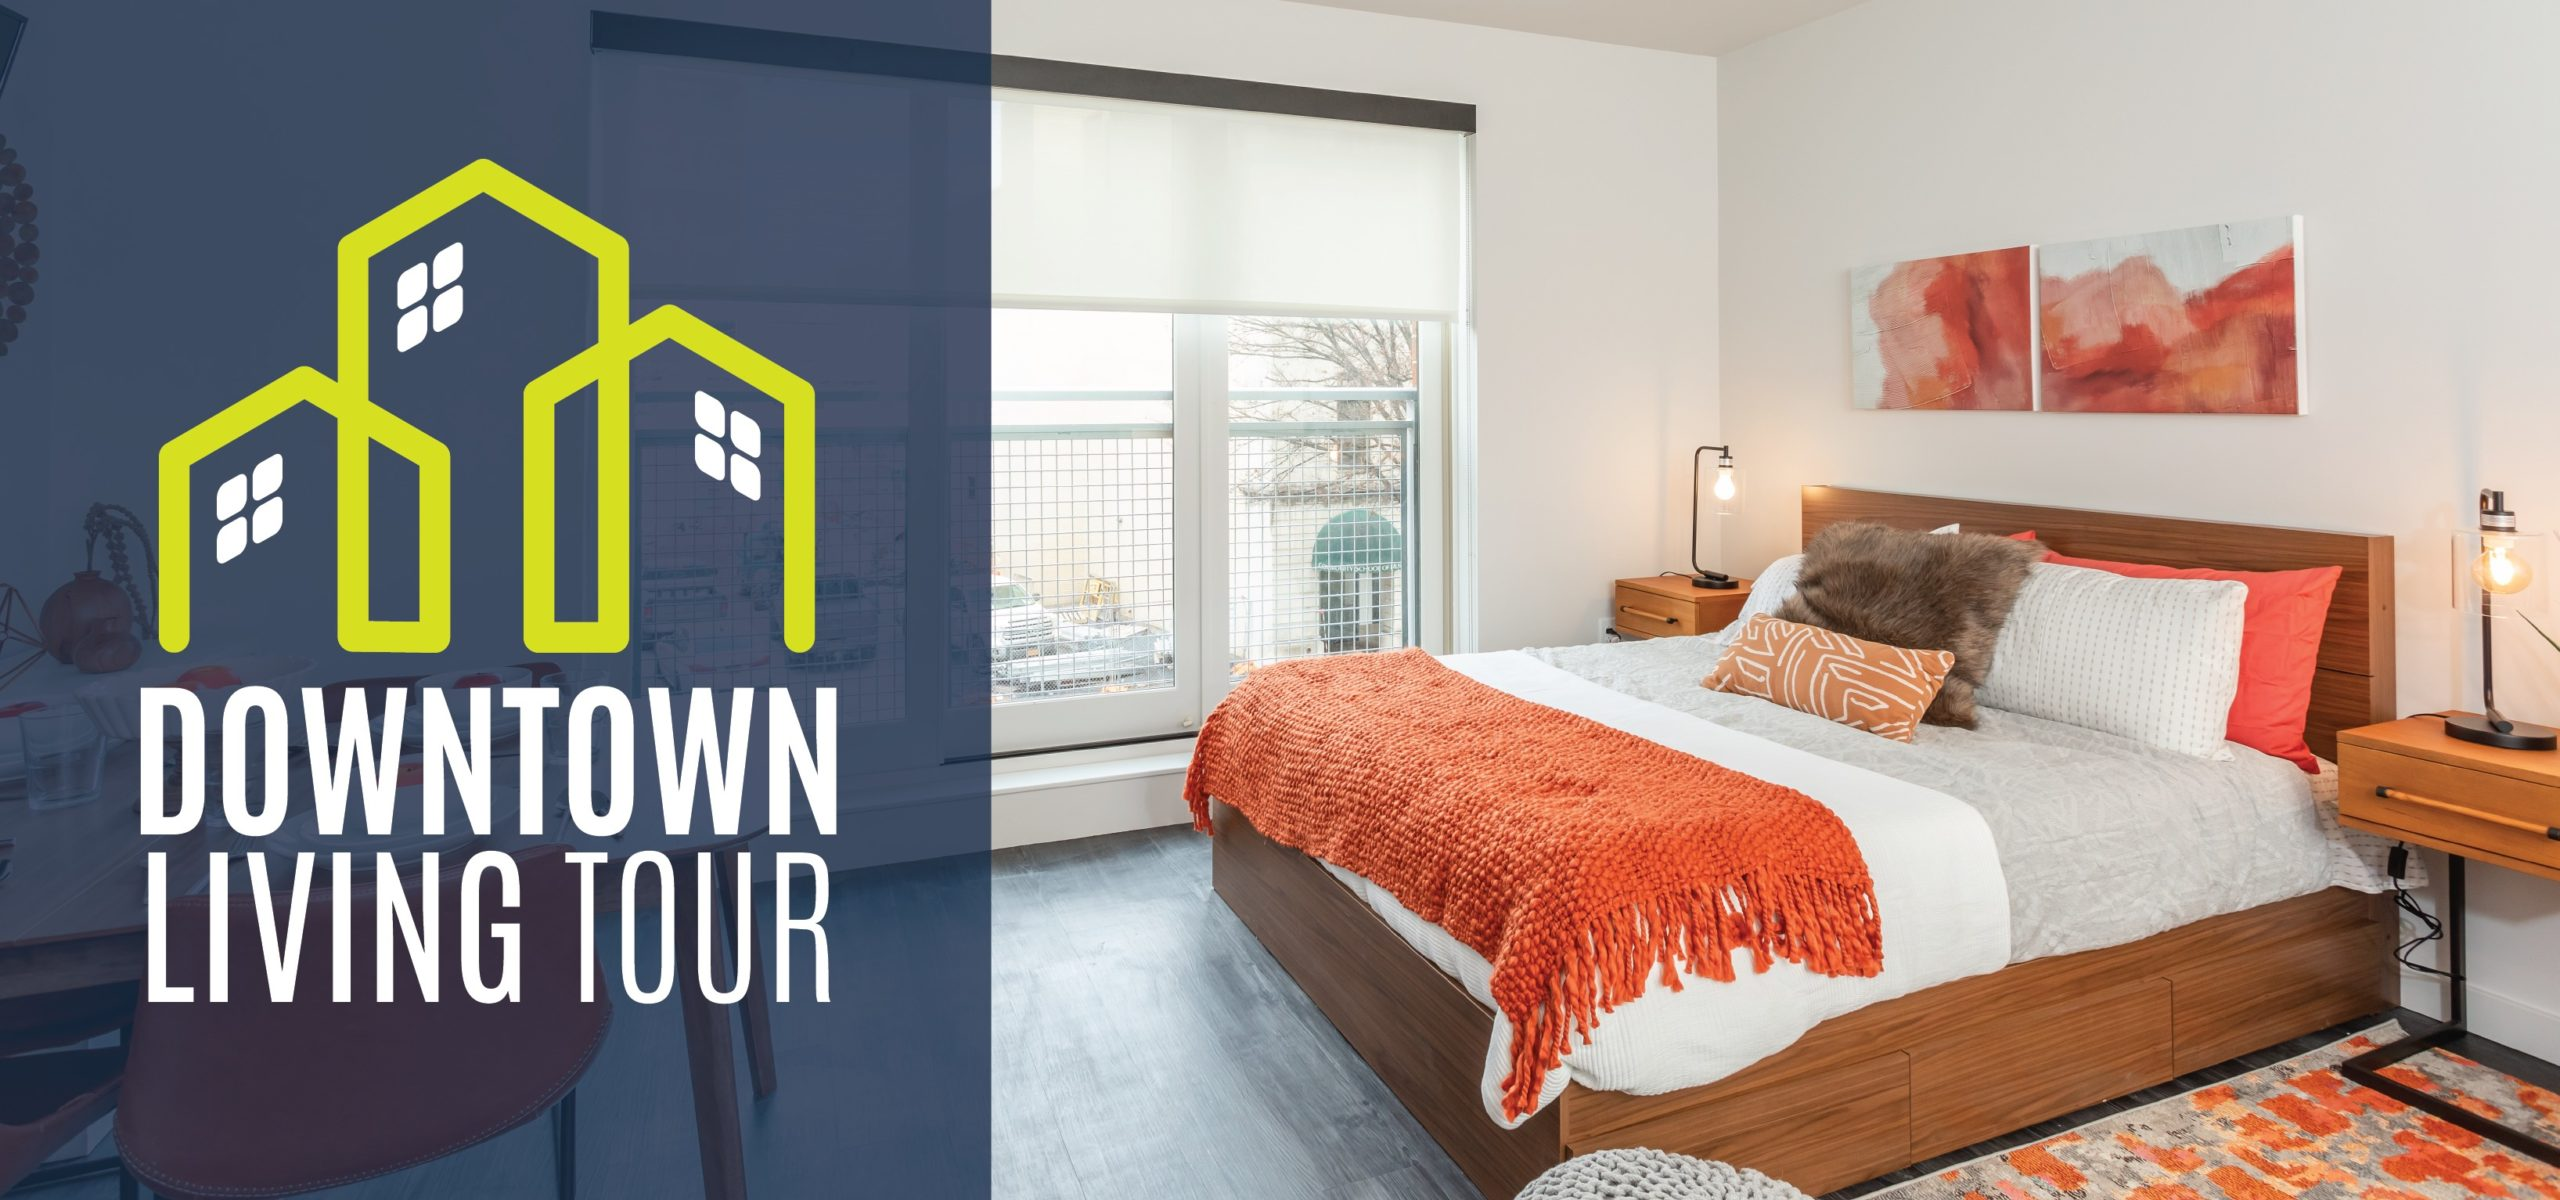 Downtown Living Tour Ad